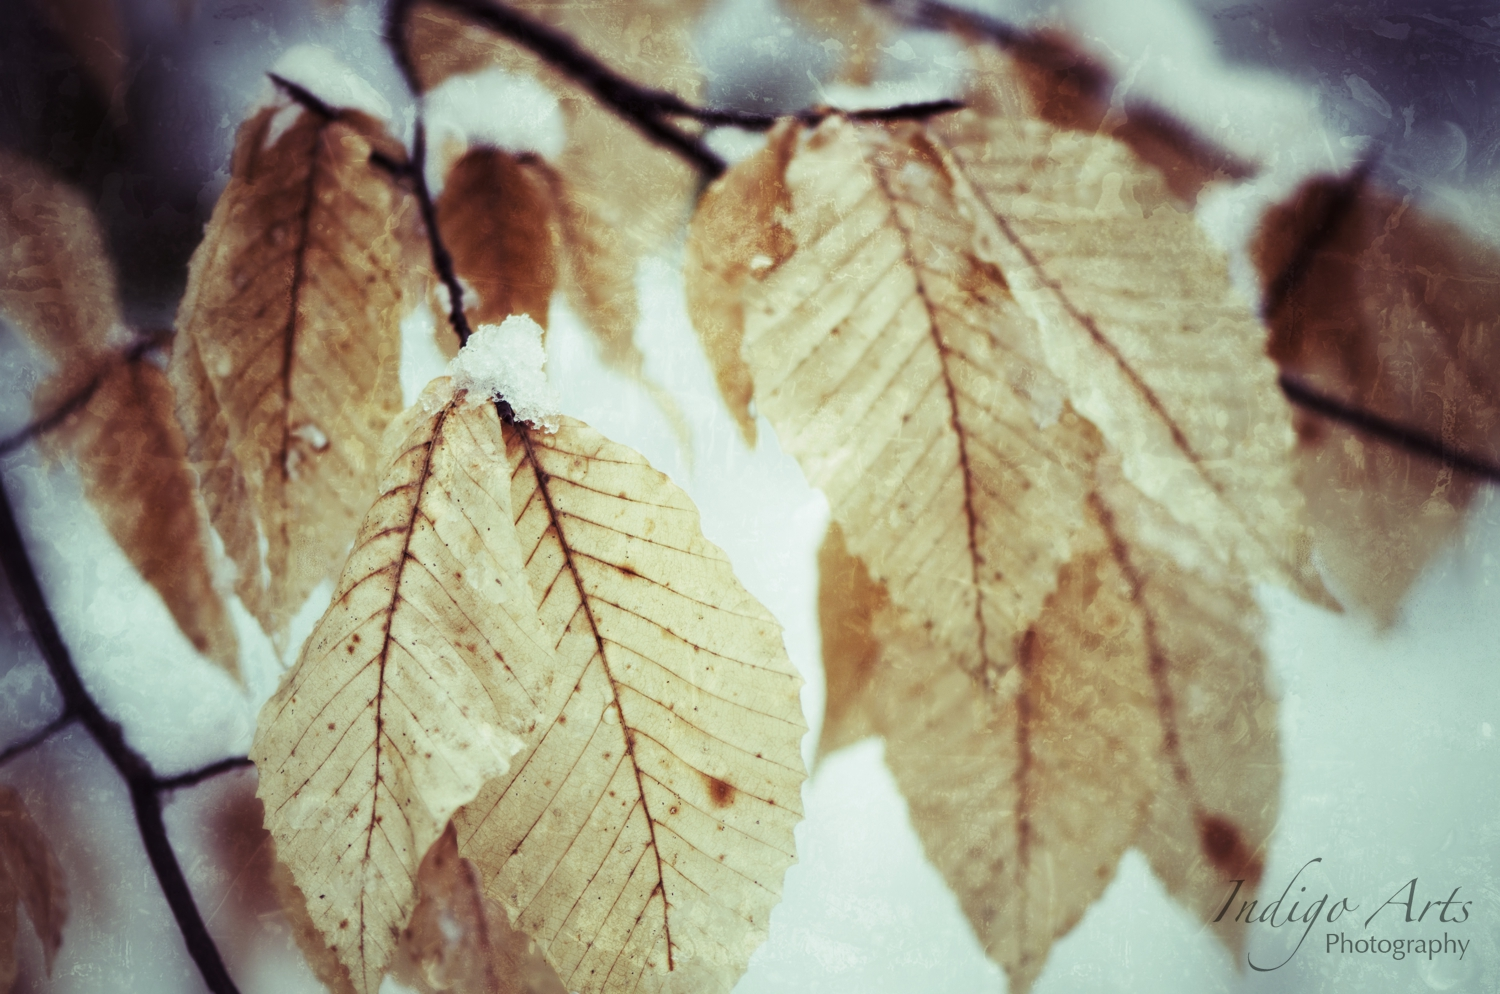 grunge leaves in snow